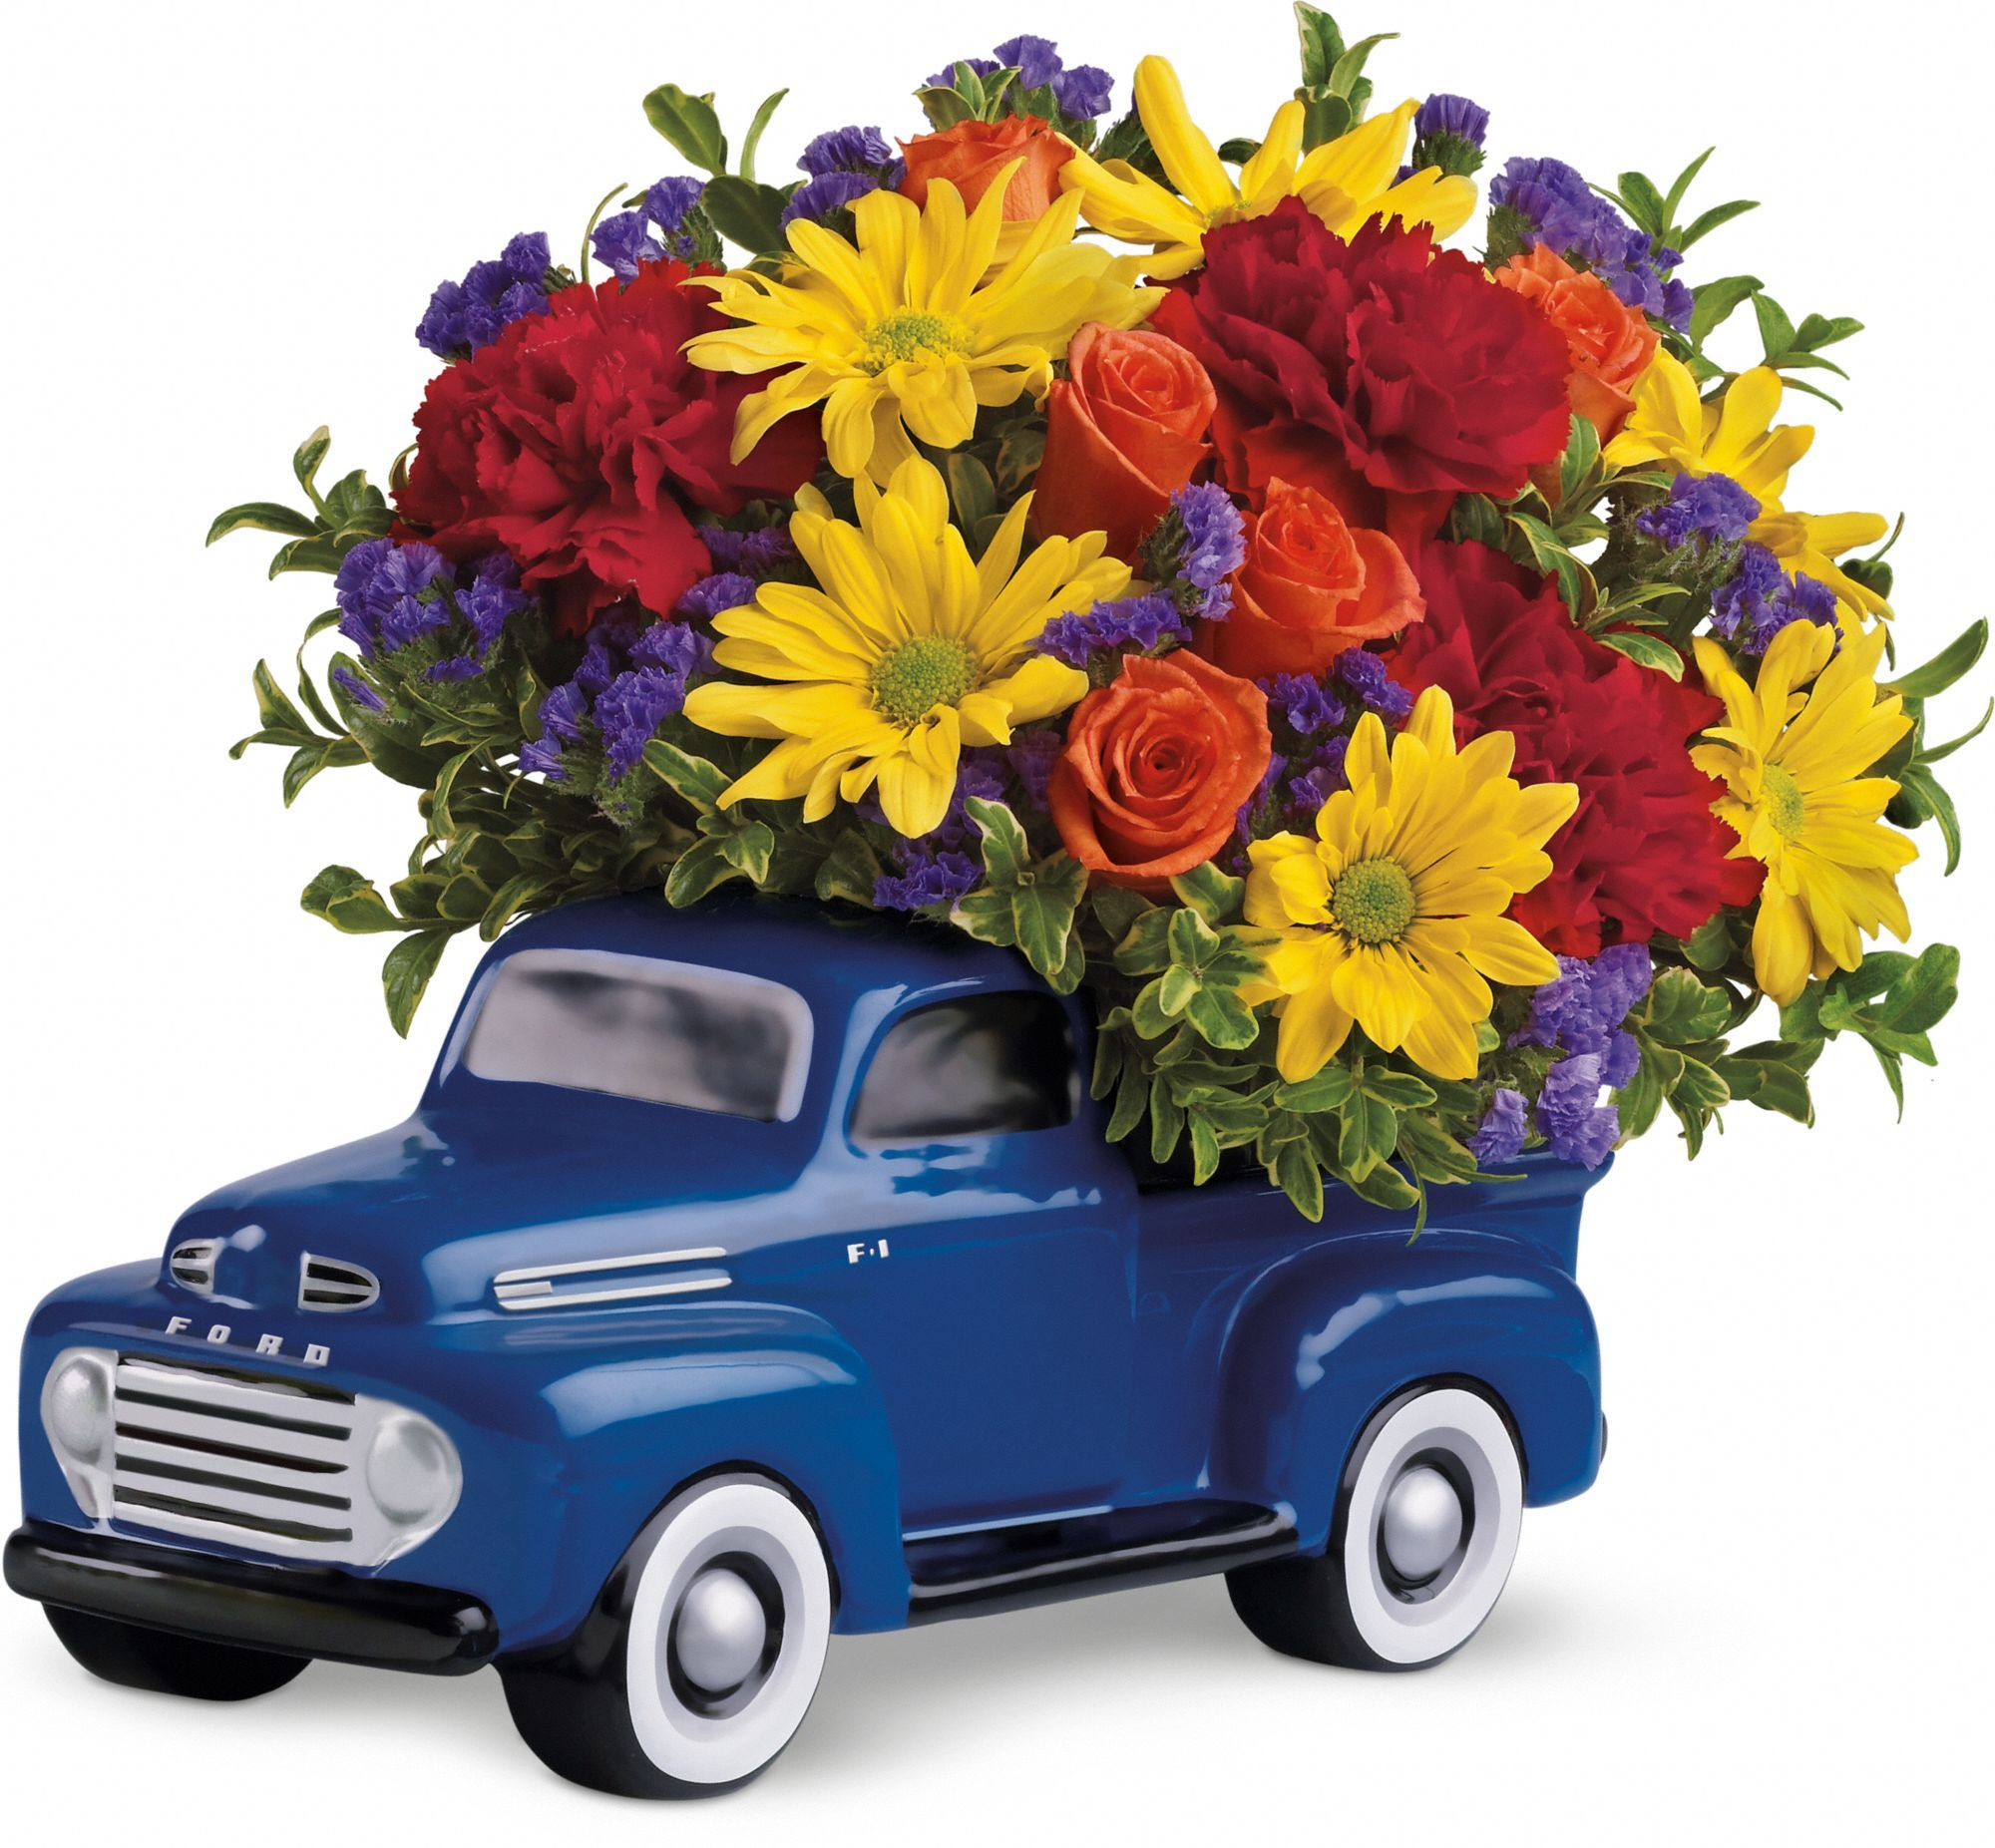 My birthday is coming telefloras 48 ford pickup bouquet i love explore baby flower flower bouquets and more izmirmasajfo Image collections